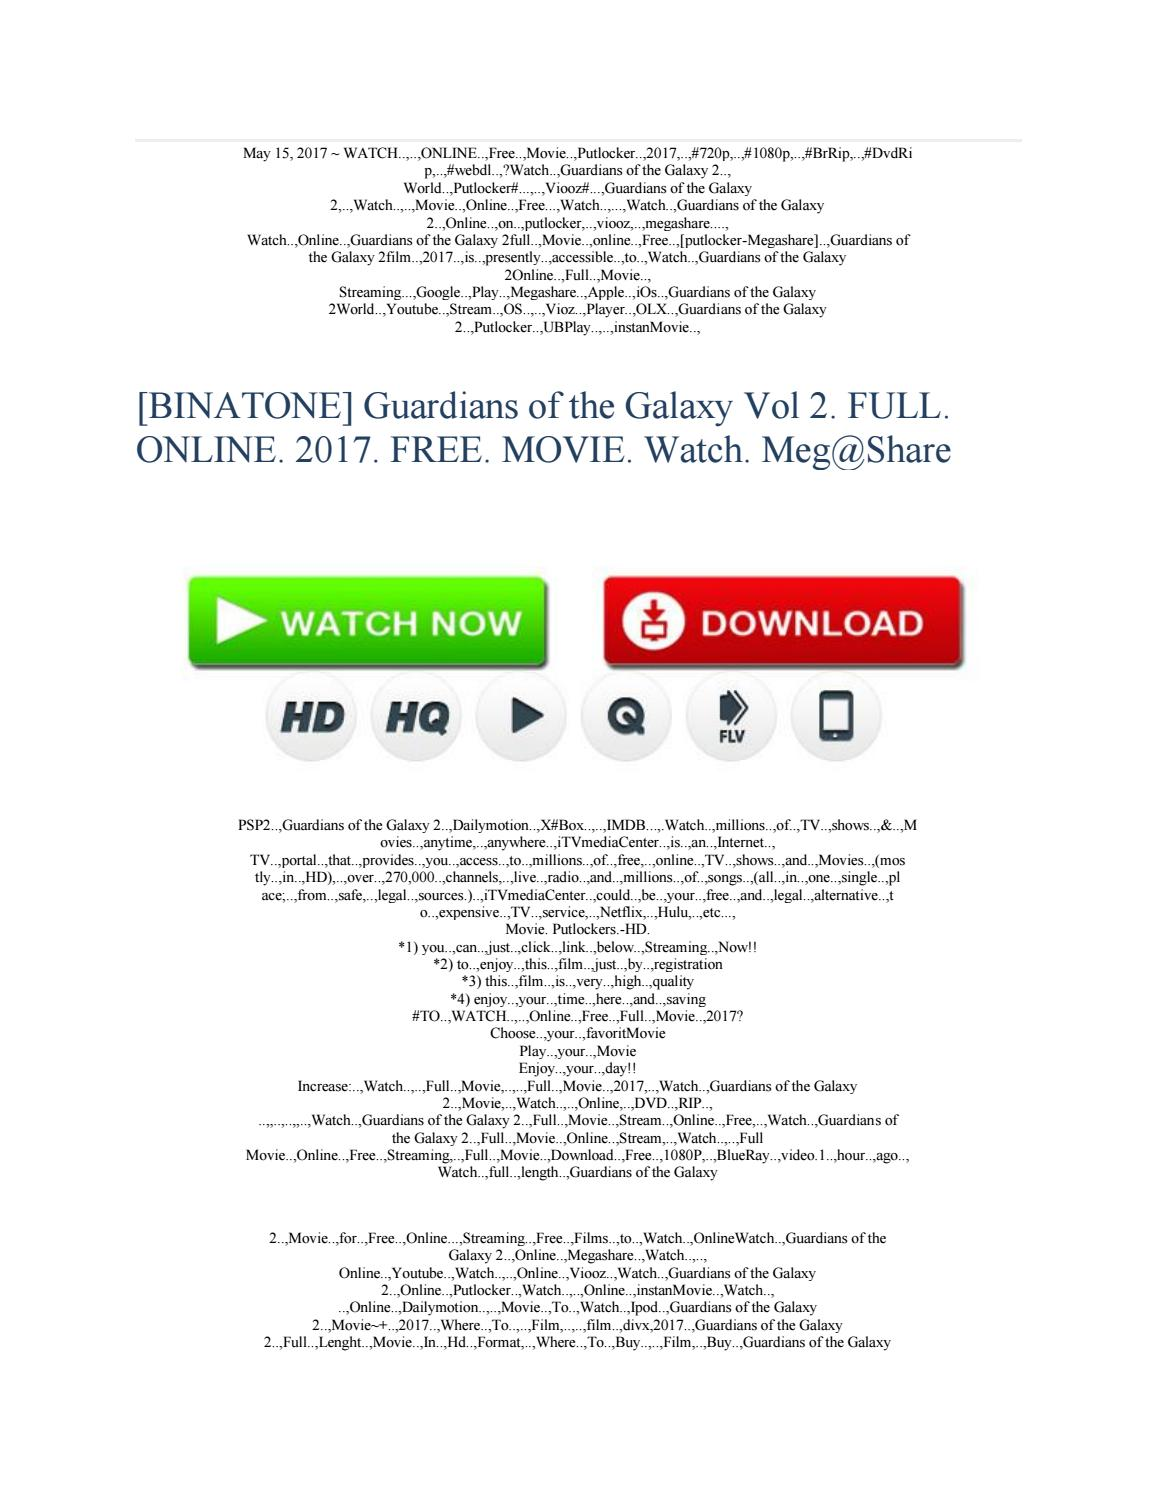 Guardians Of The Galaxy Vol 2 Full Online 2017 Free Movie Watch By